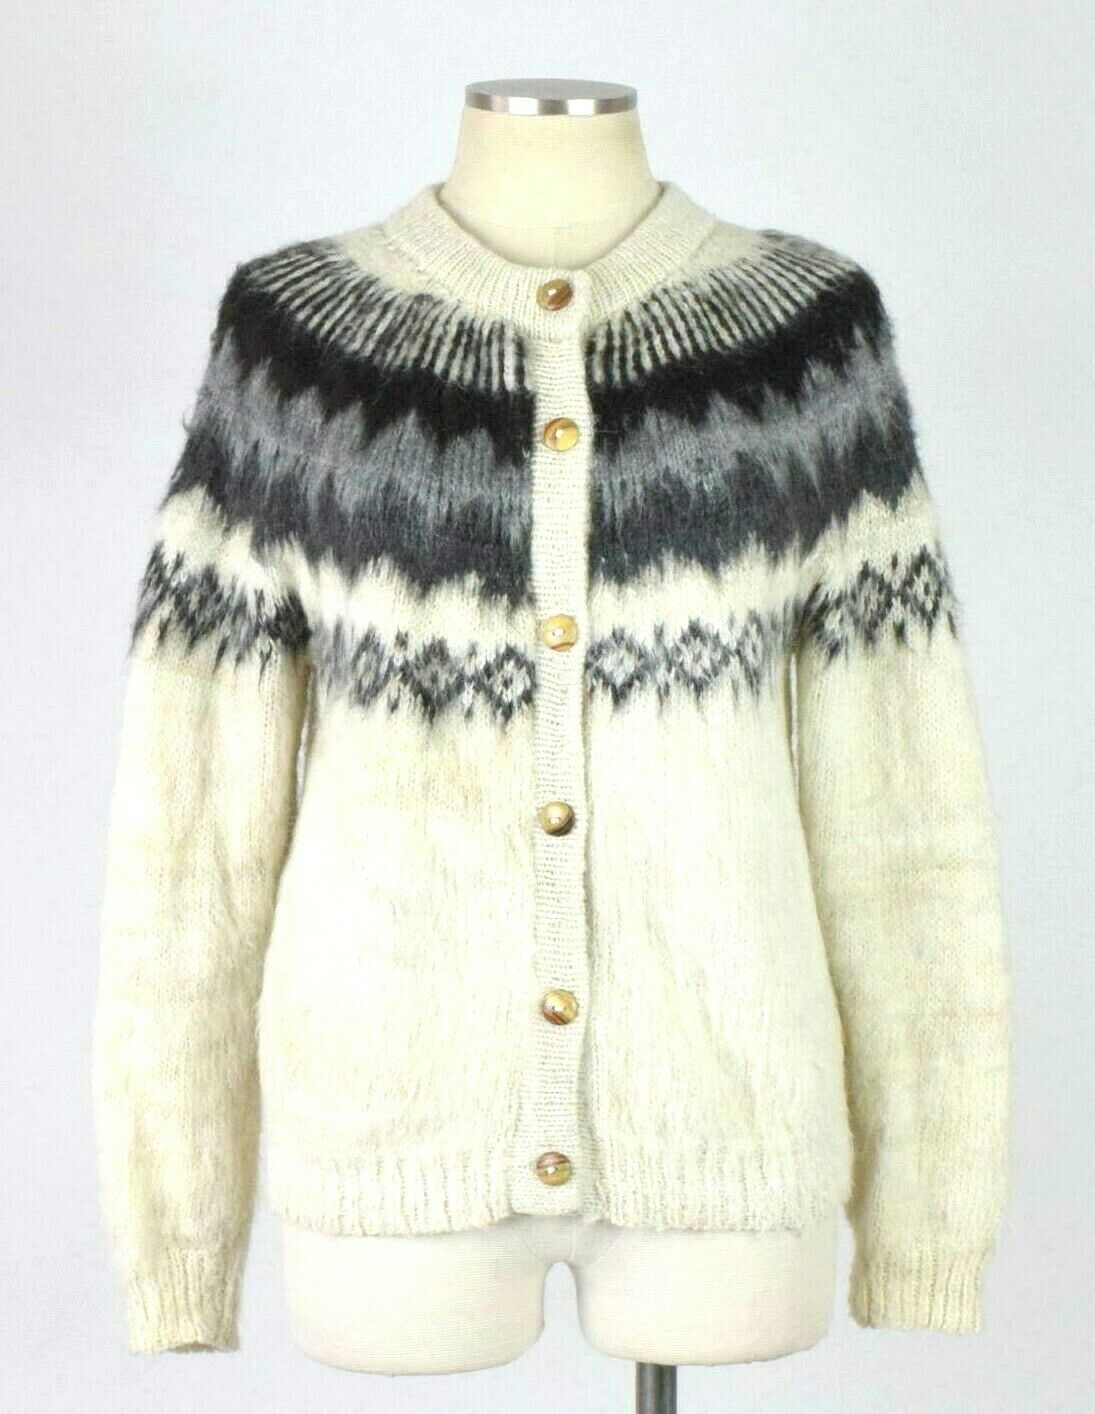 Chasqui Hand Knit Alpaca Luxe Shaggy Cardigan Sweater Jumper Loose Fit Womens S